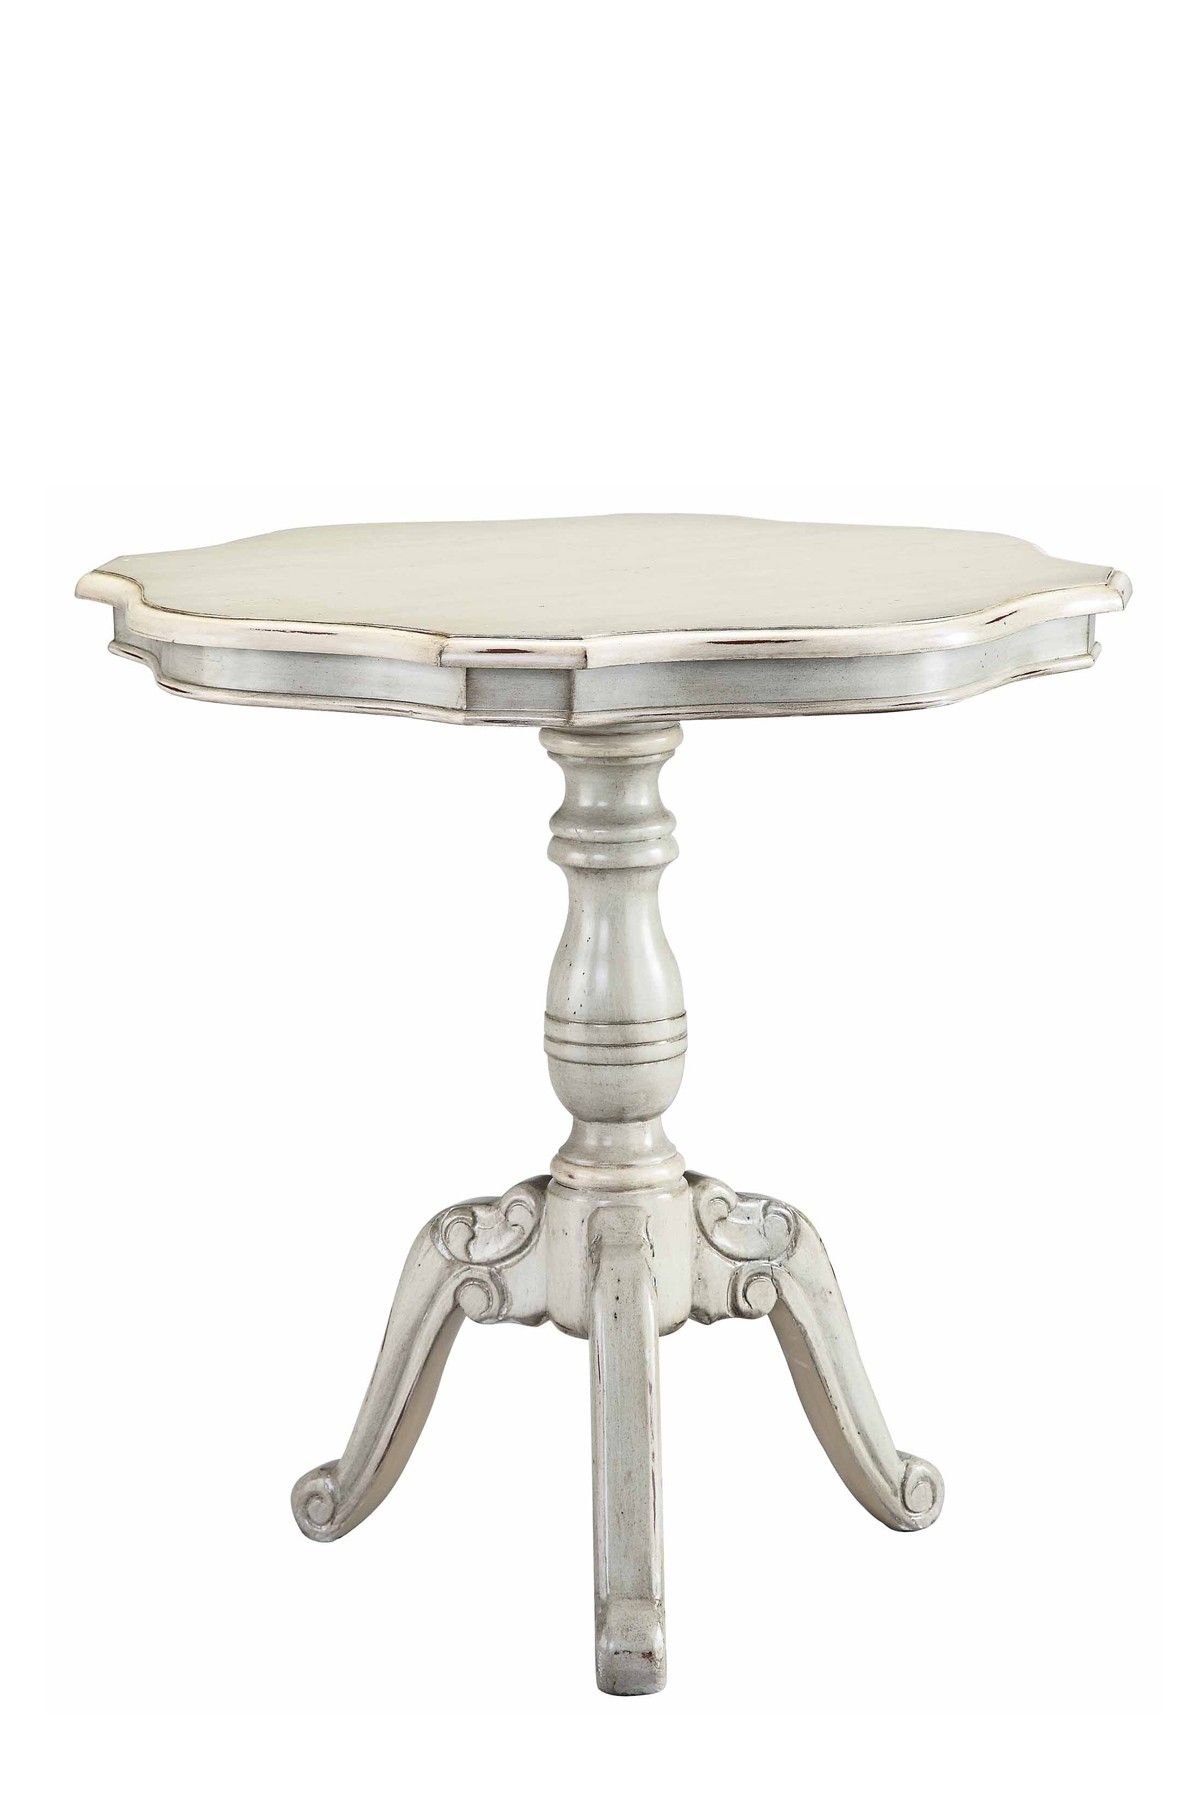 French Cottage Mont Blanc Round Accent Table Entrada Mesa